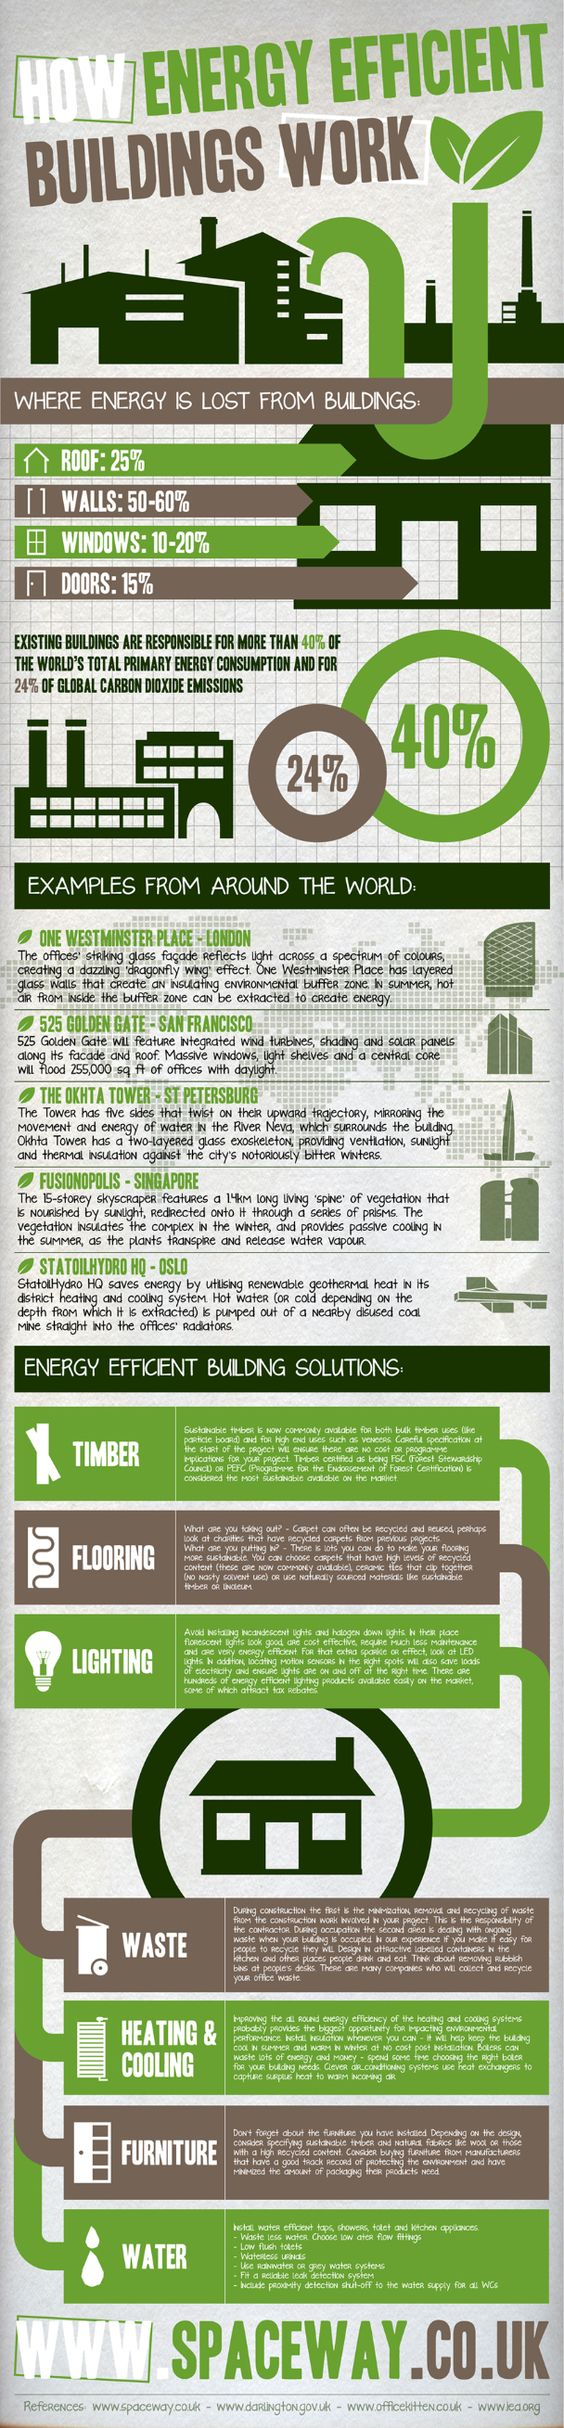 How Energy Efficient Buildings Work Infographic Eco